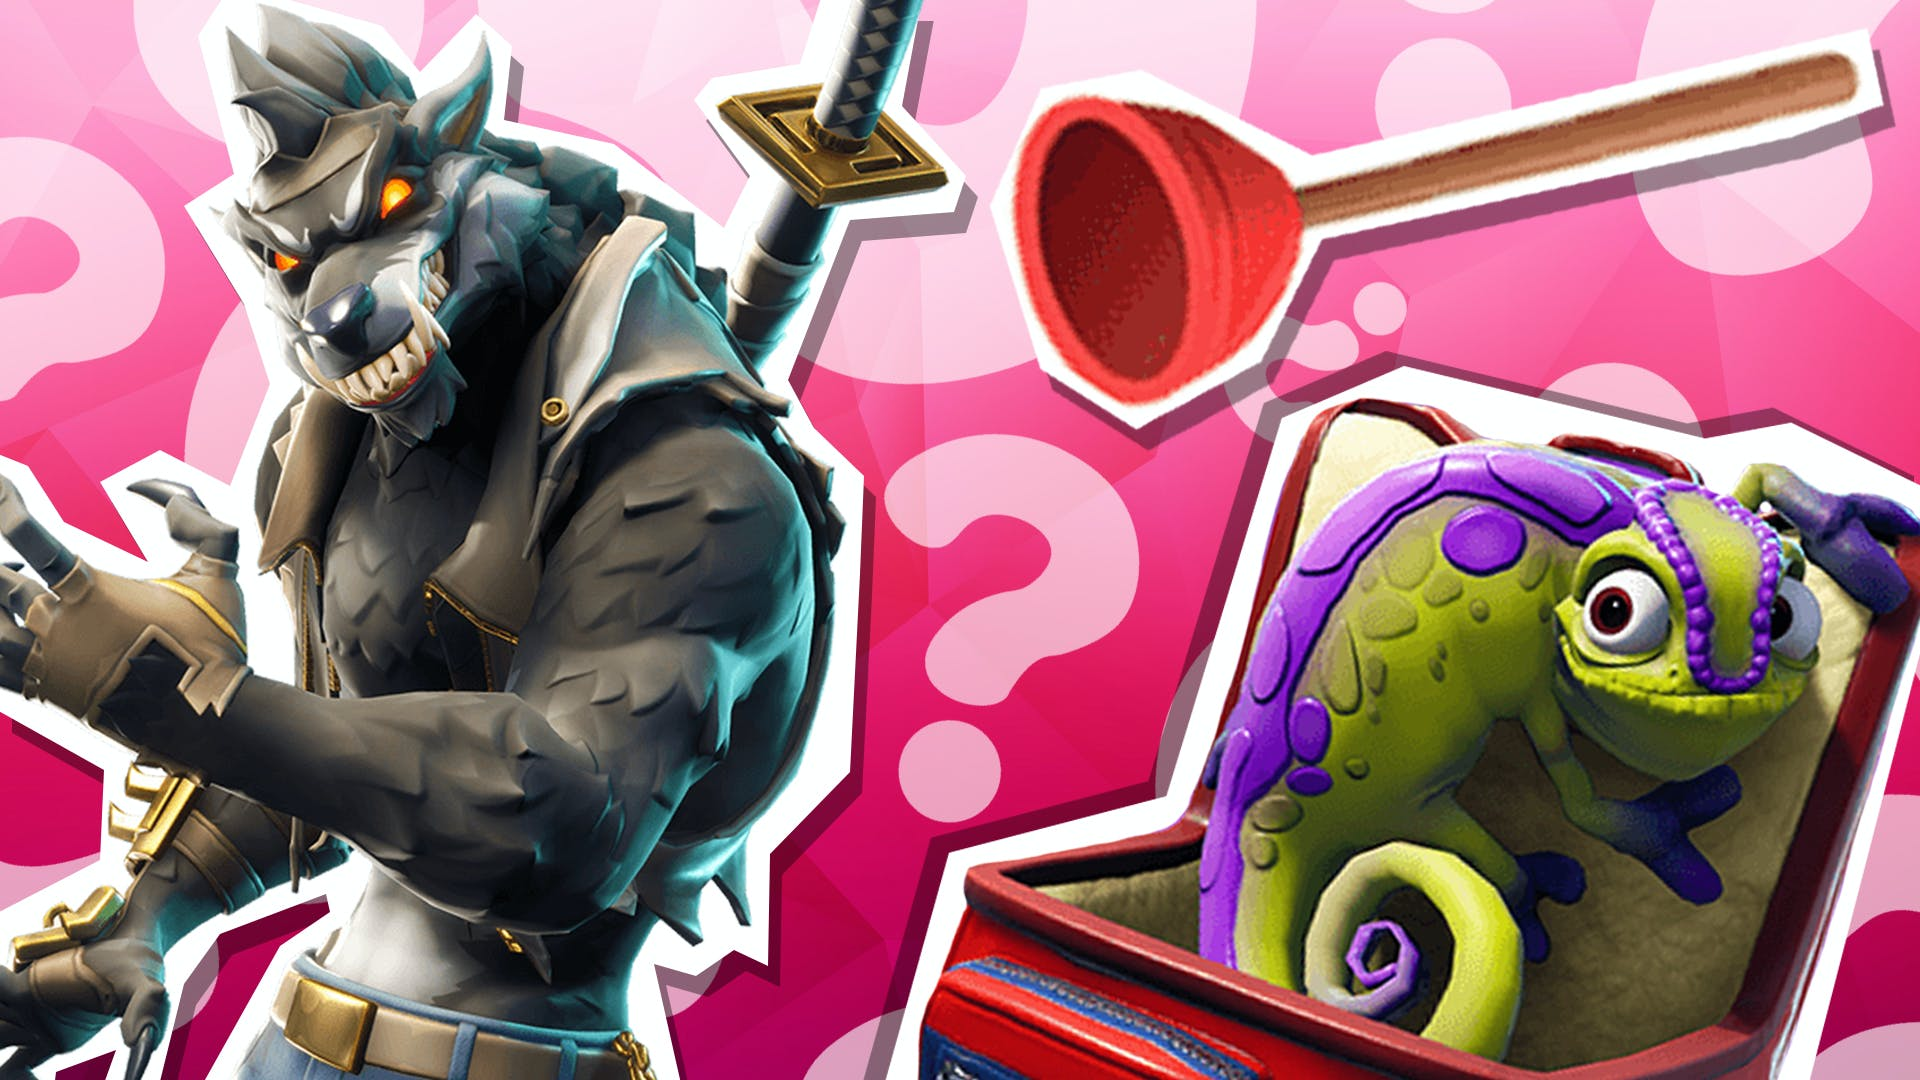 personality quiz which fortnite skin are you fortnite quiz on personality quiz which fortnite skin - buzzfeed fortnite quiz